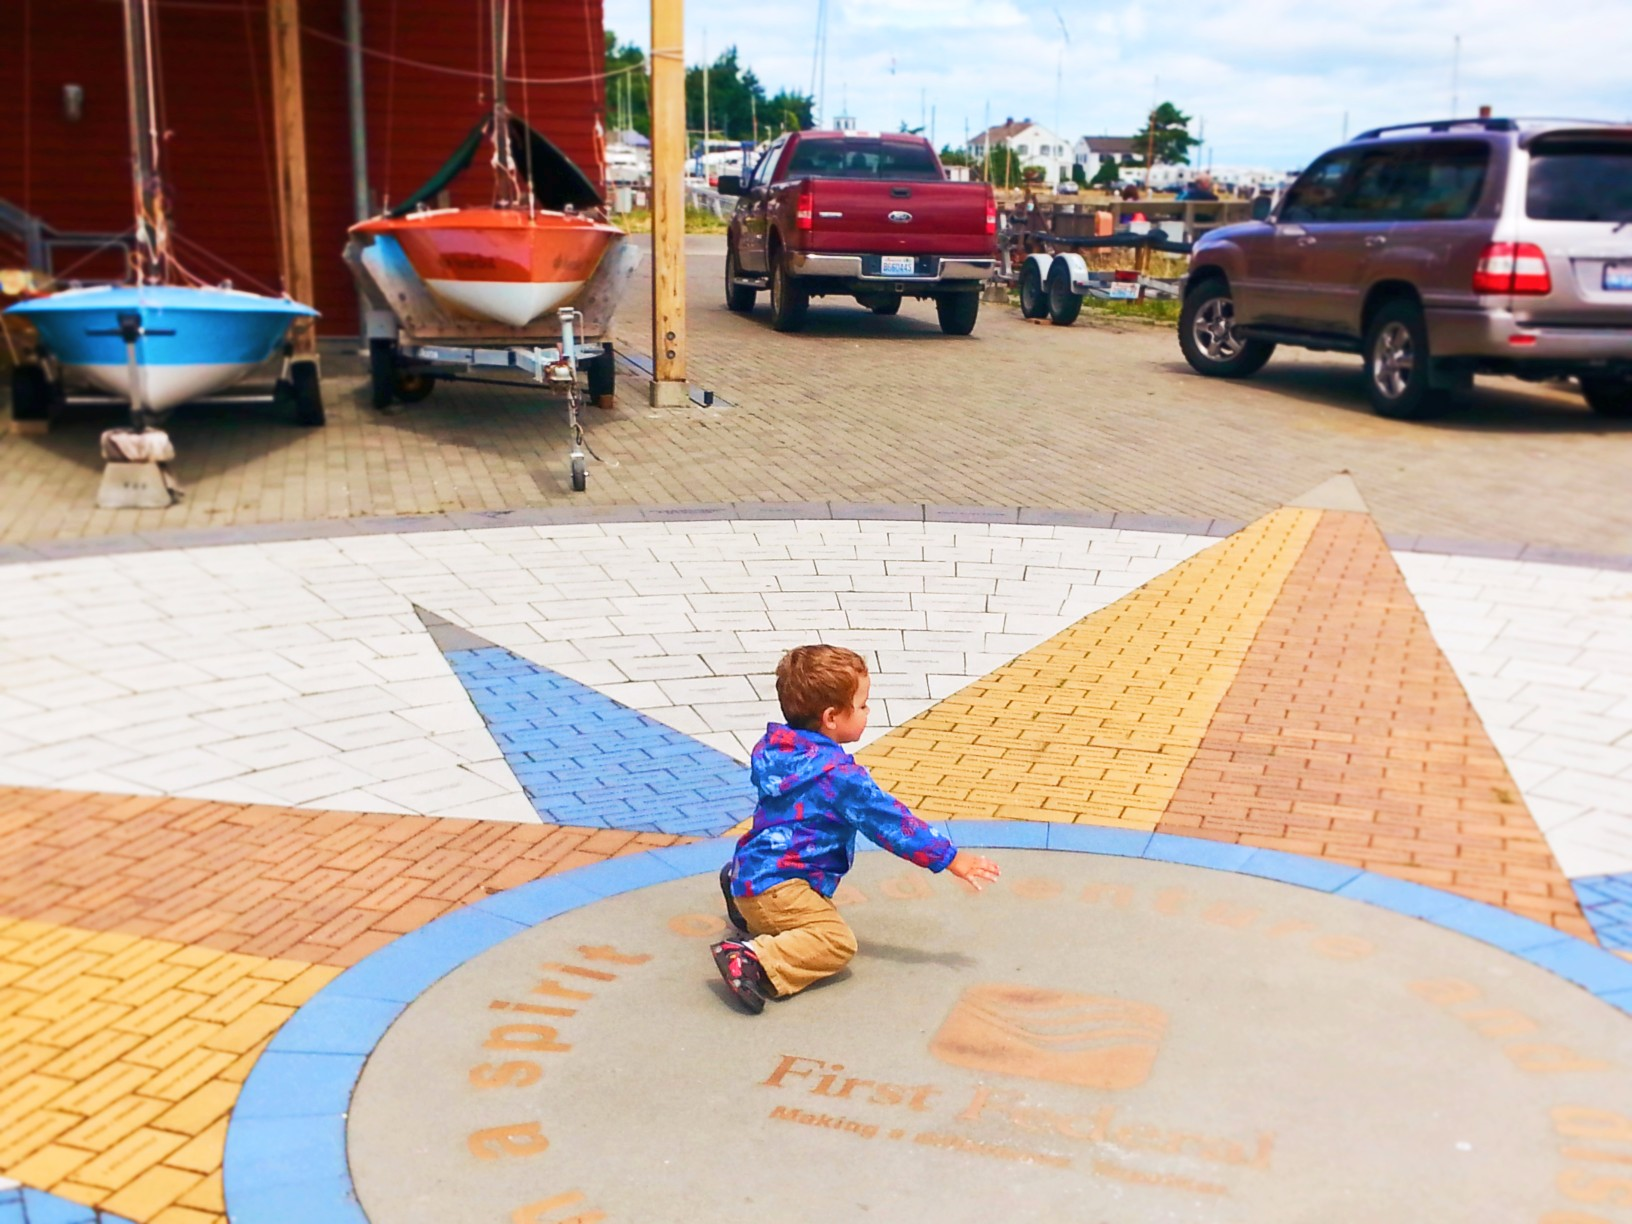 Taylor family at Northwest Center for Wooden Boats Port Townsend 1